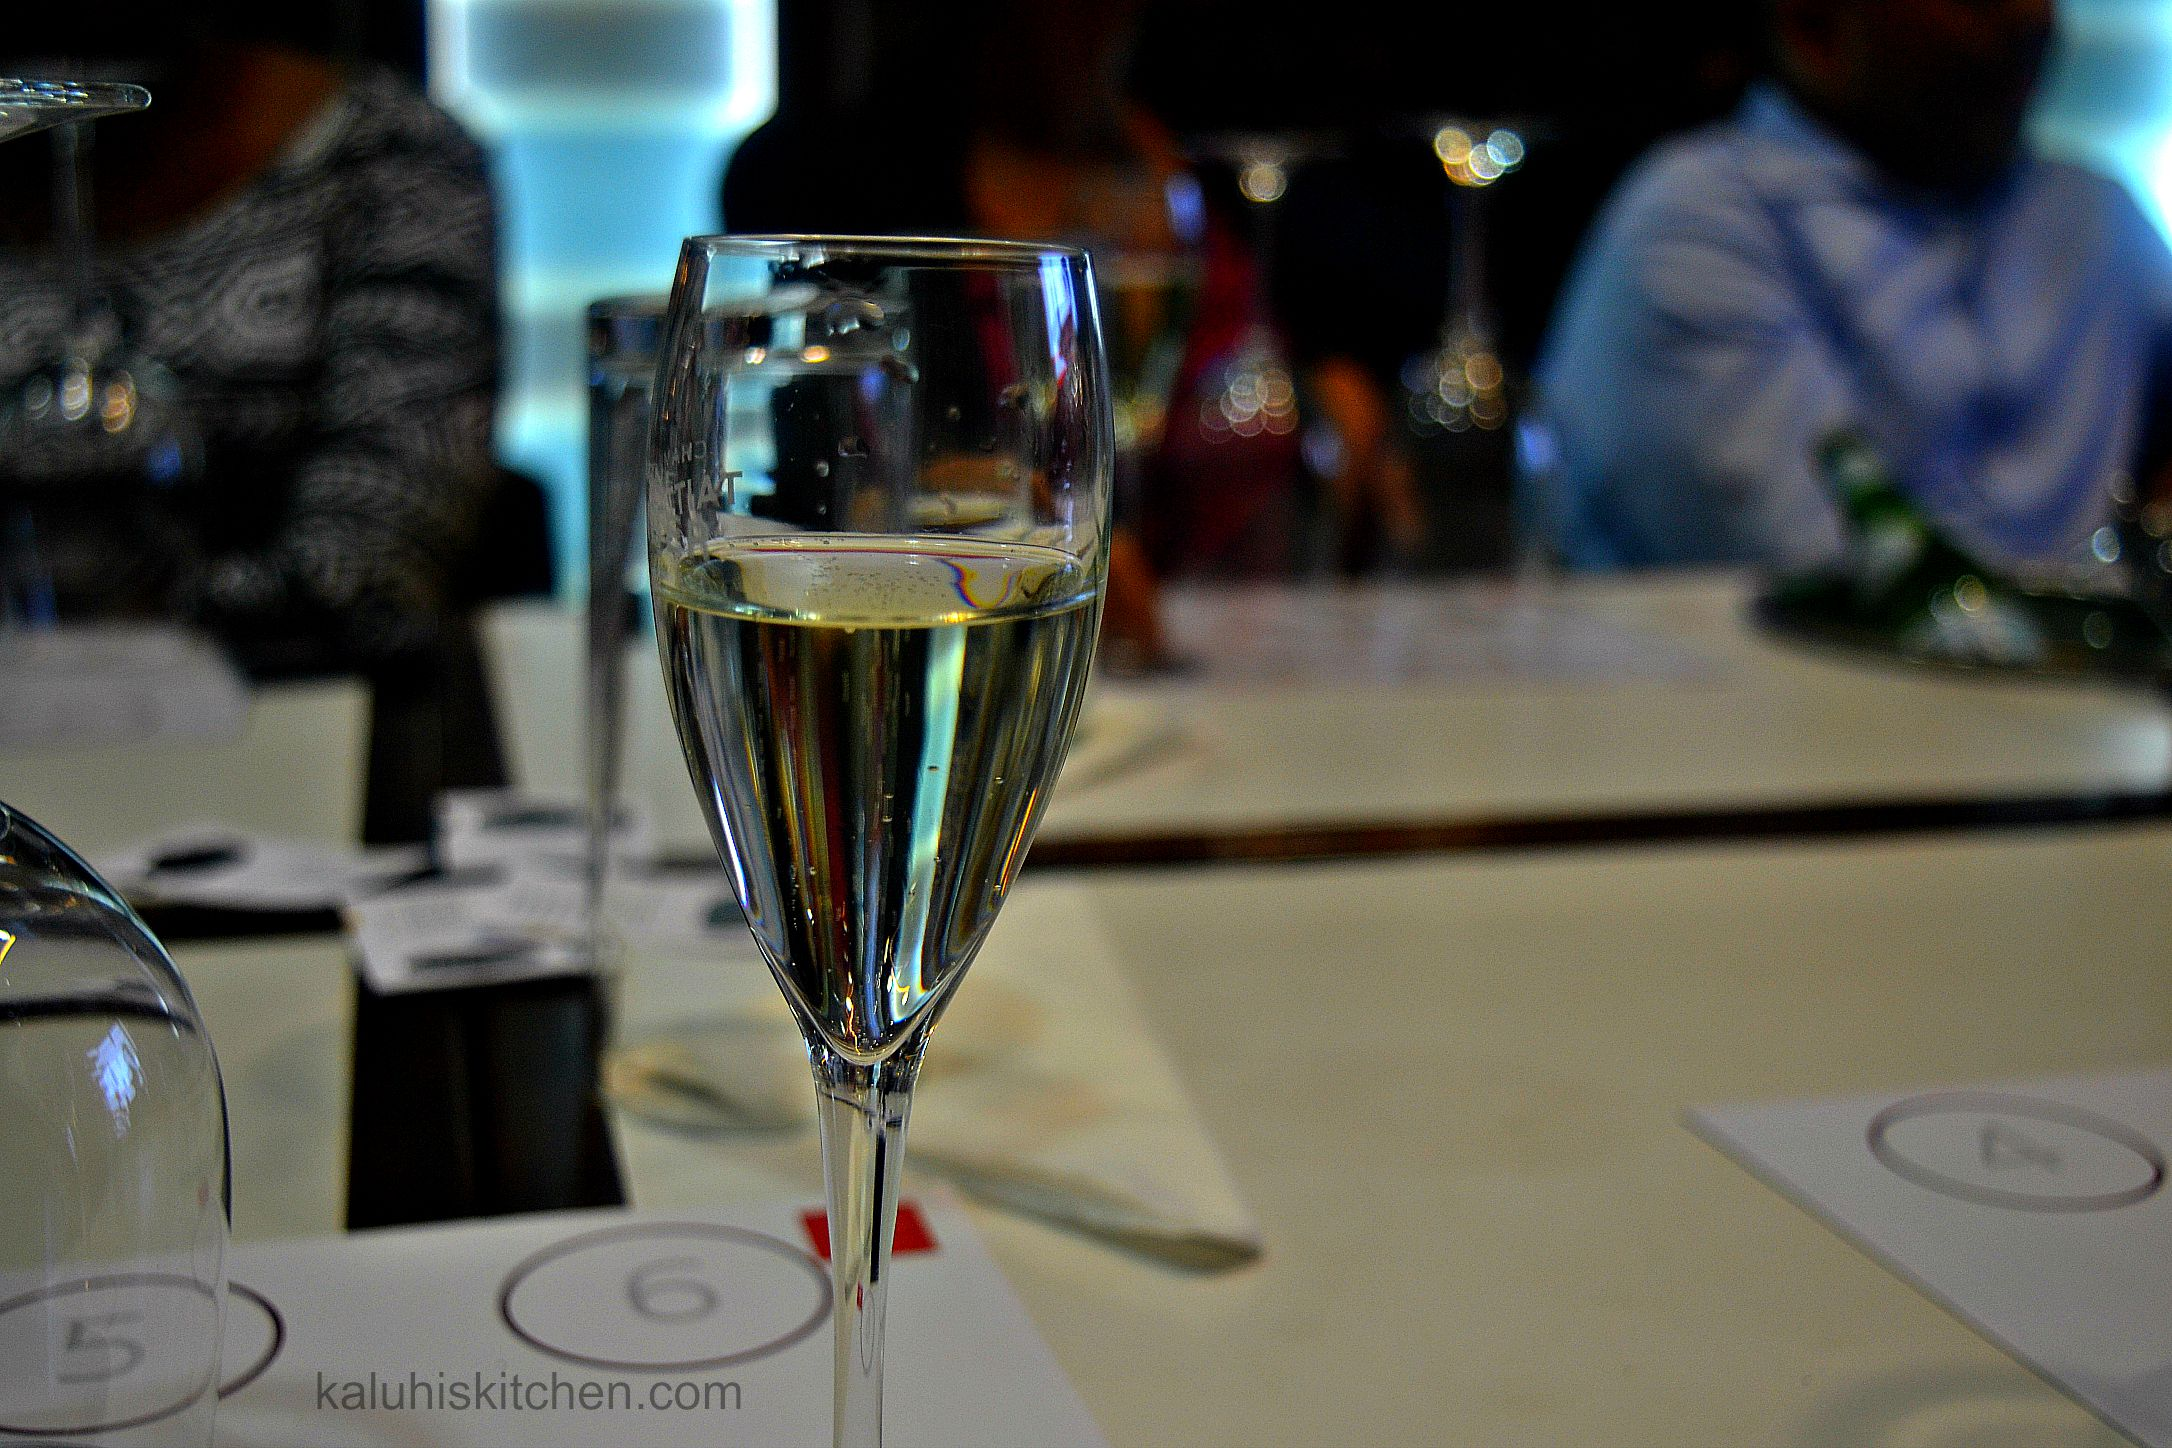 best place to get high quality wine in nairobi is at salt bar and grill at the junction_kaluhiskitchen.com_cava brut